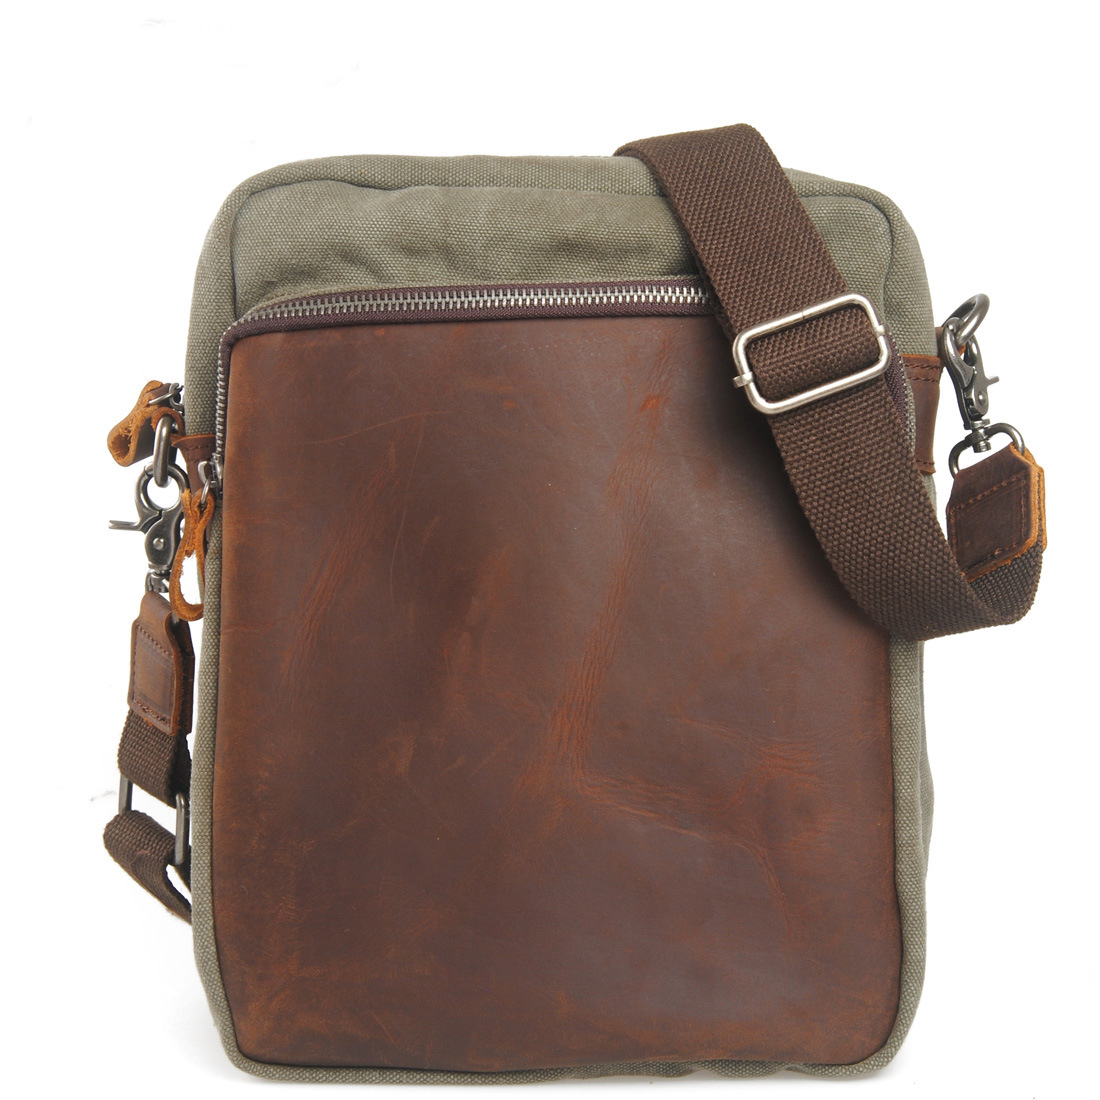 Vintage Canvas Genuine Cowhide Leather Rucksack Messenger Bag School Crossbody Shoulder Bag Briefcase